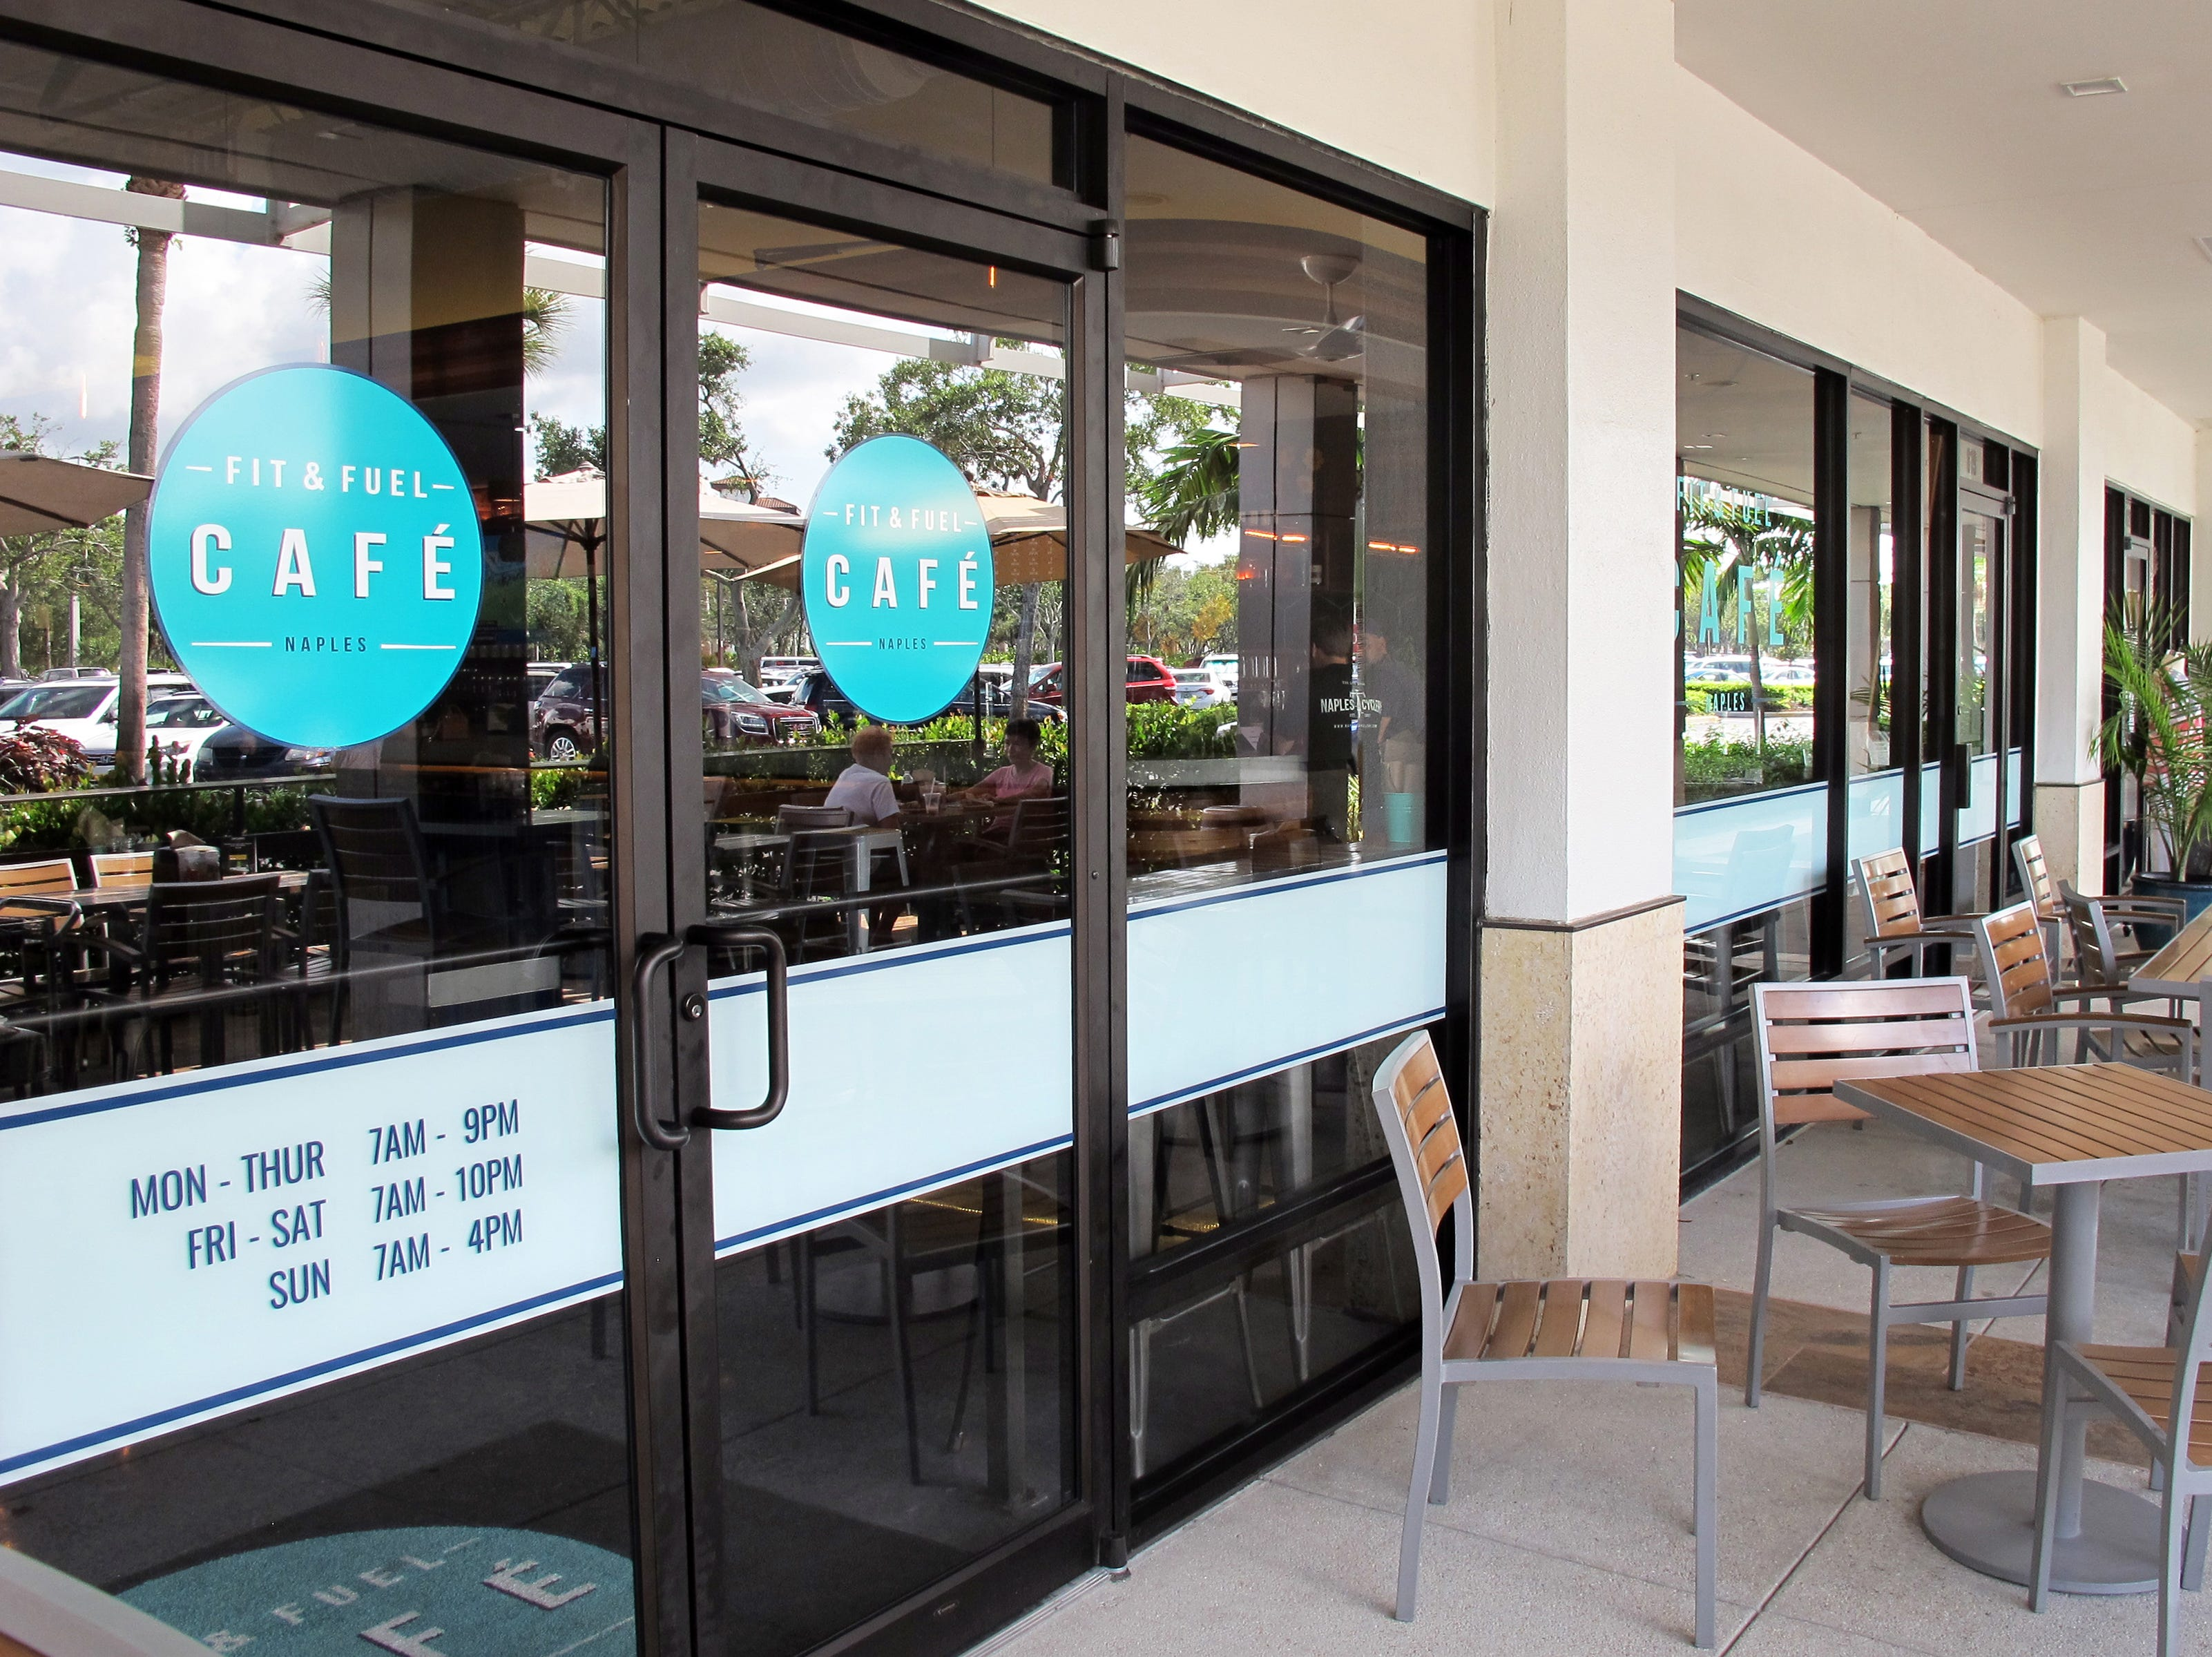 Fit & Fuel Cafe reopened in June 2018 in a newly expanded space at The Pavilion shopping center in North Naples.